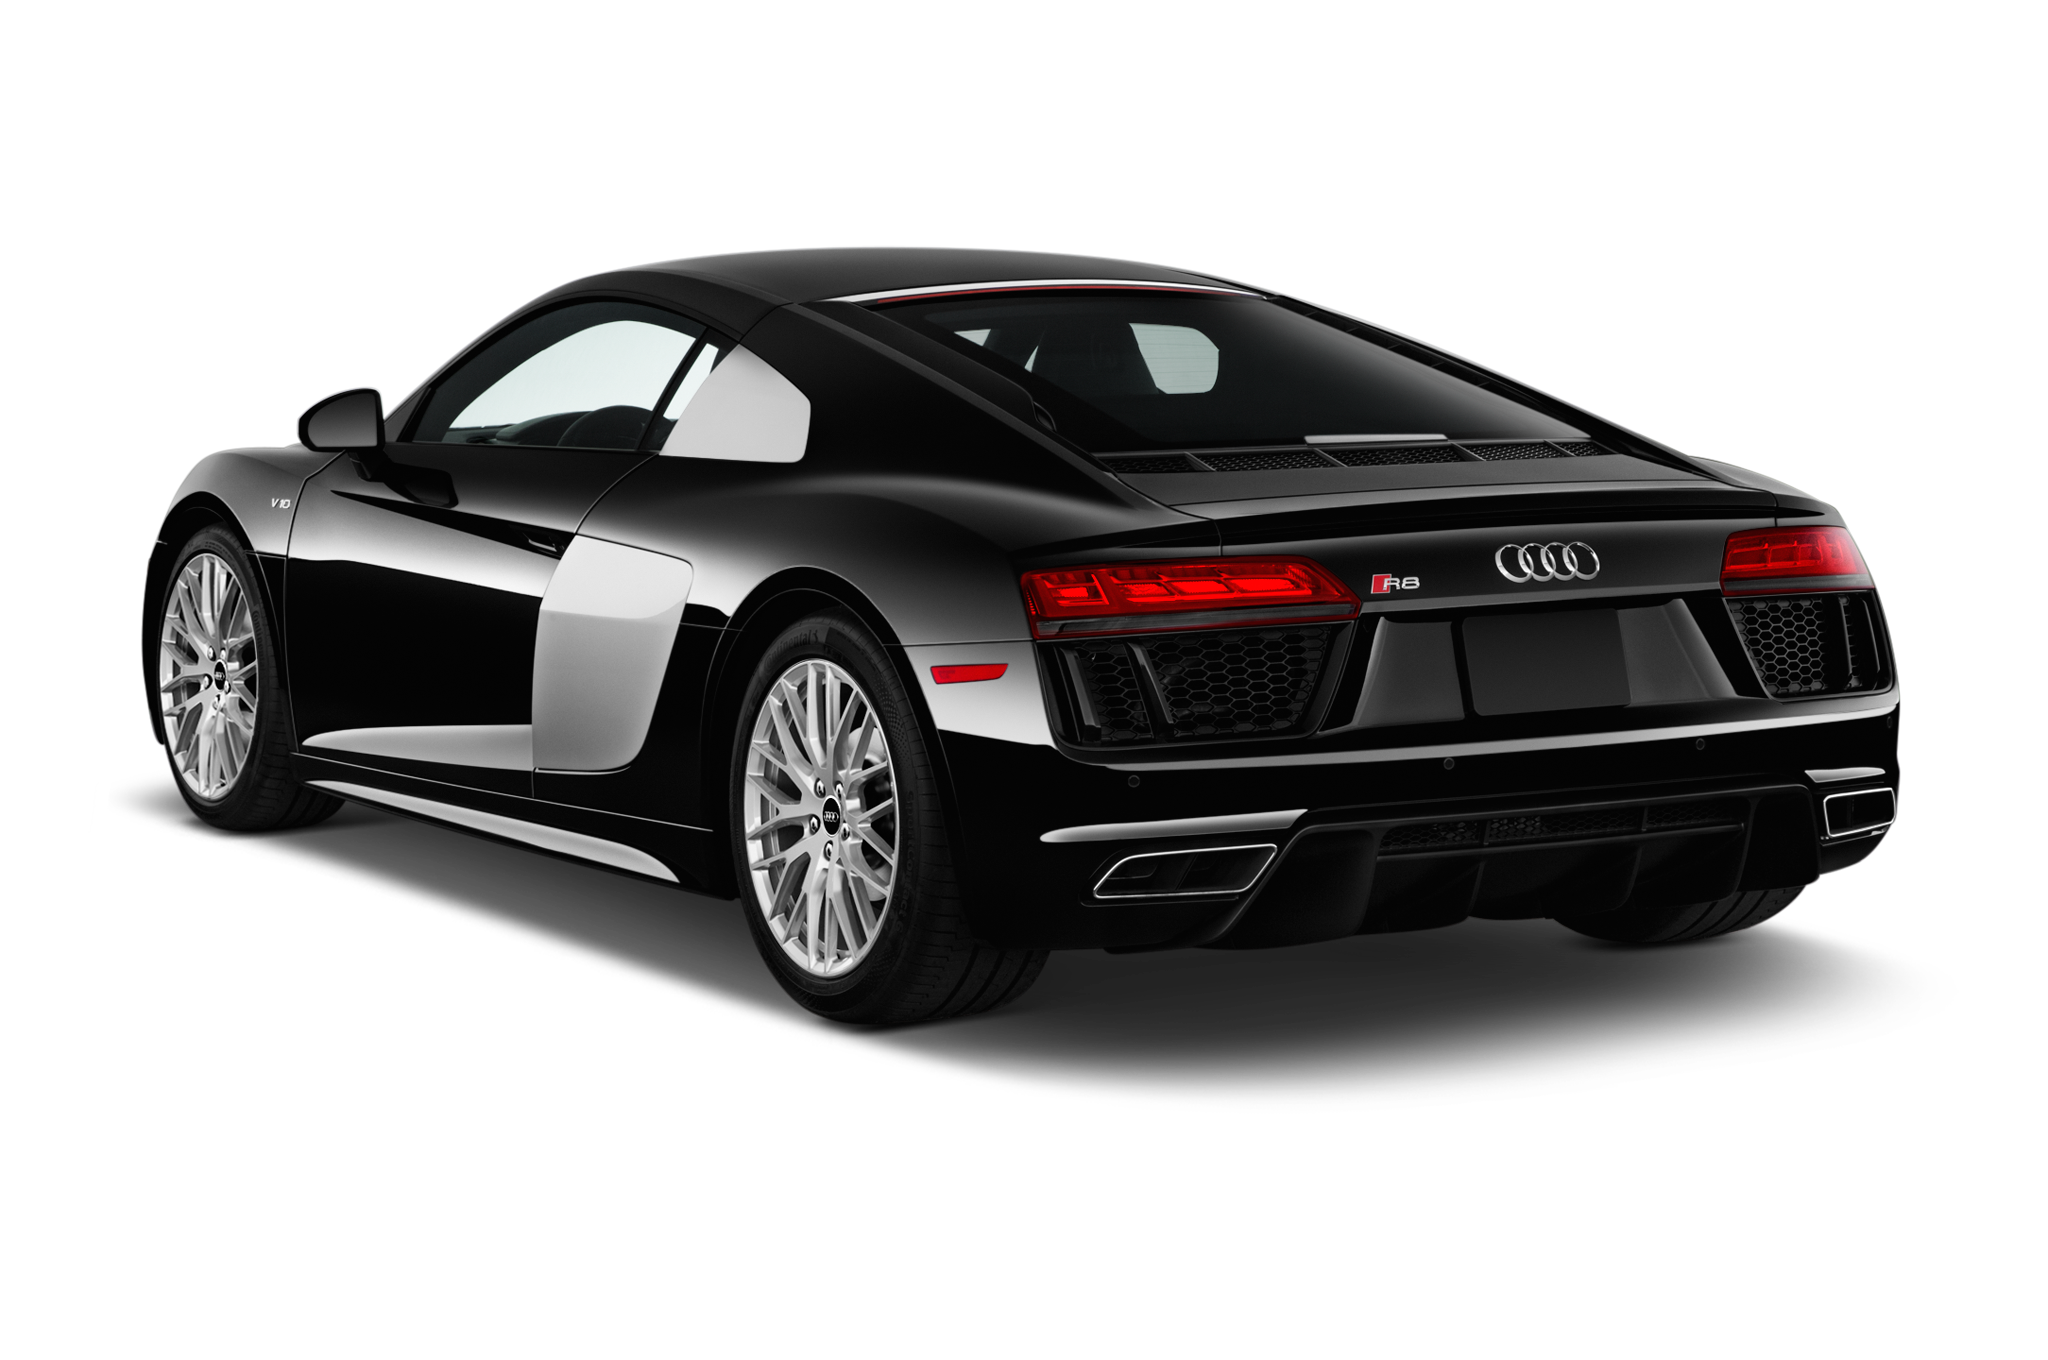 banner freeuse stock R lms gt is. Vector supercars audi r8